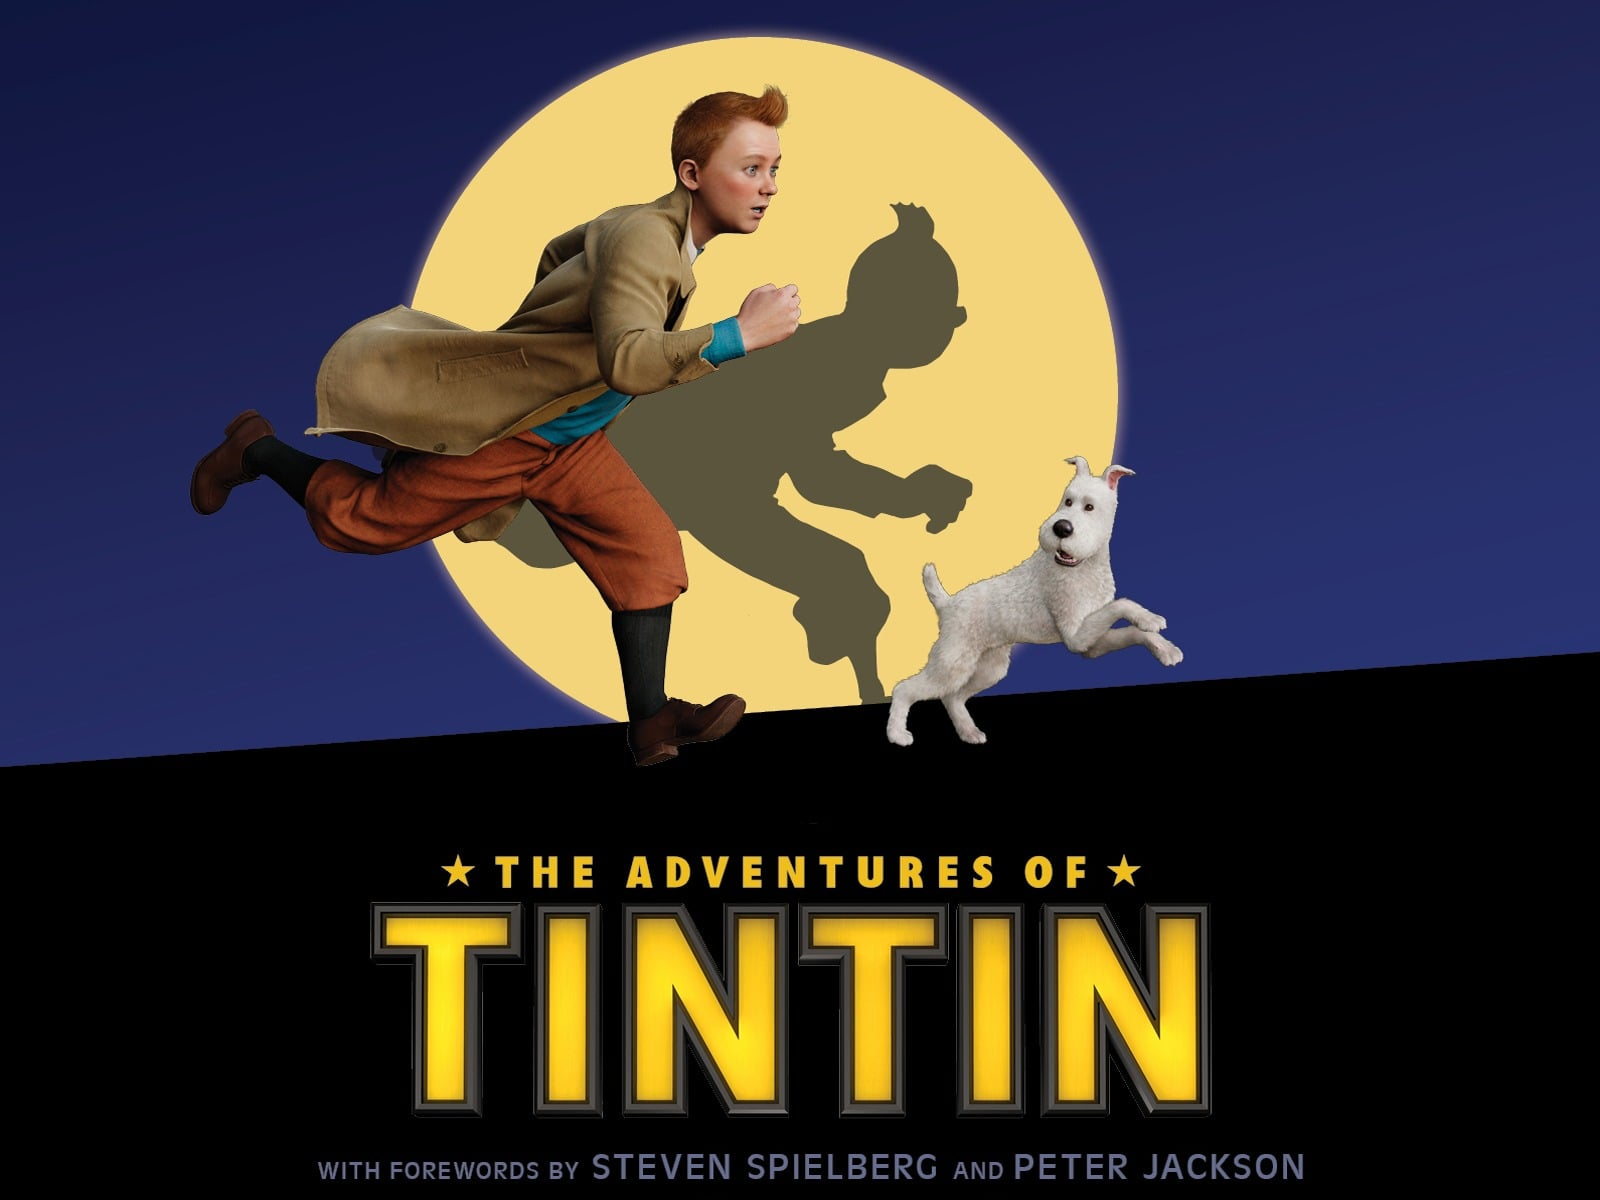 The Adventures of Tintin The Secret of the Unicorn PC Game Info: